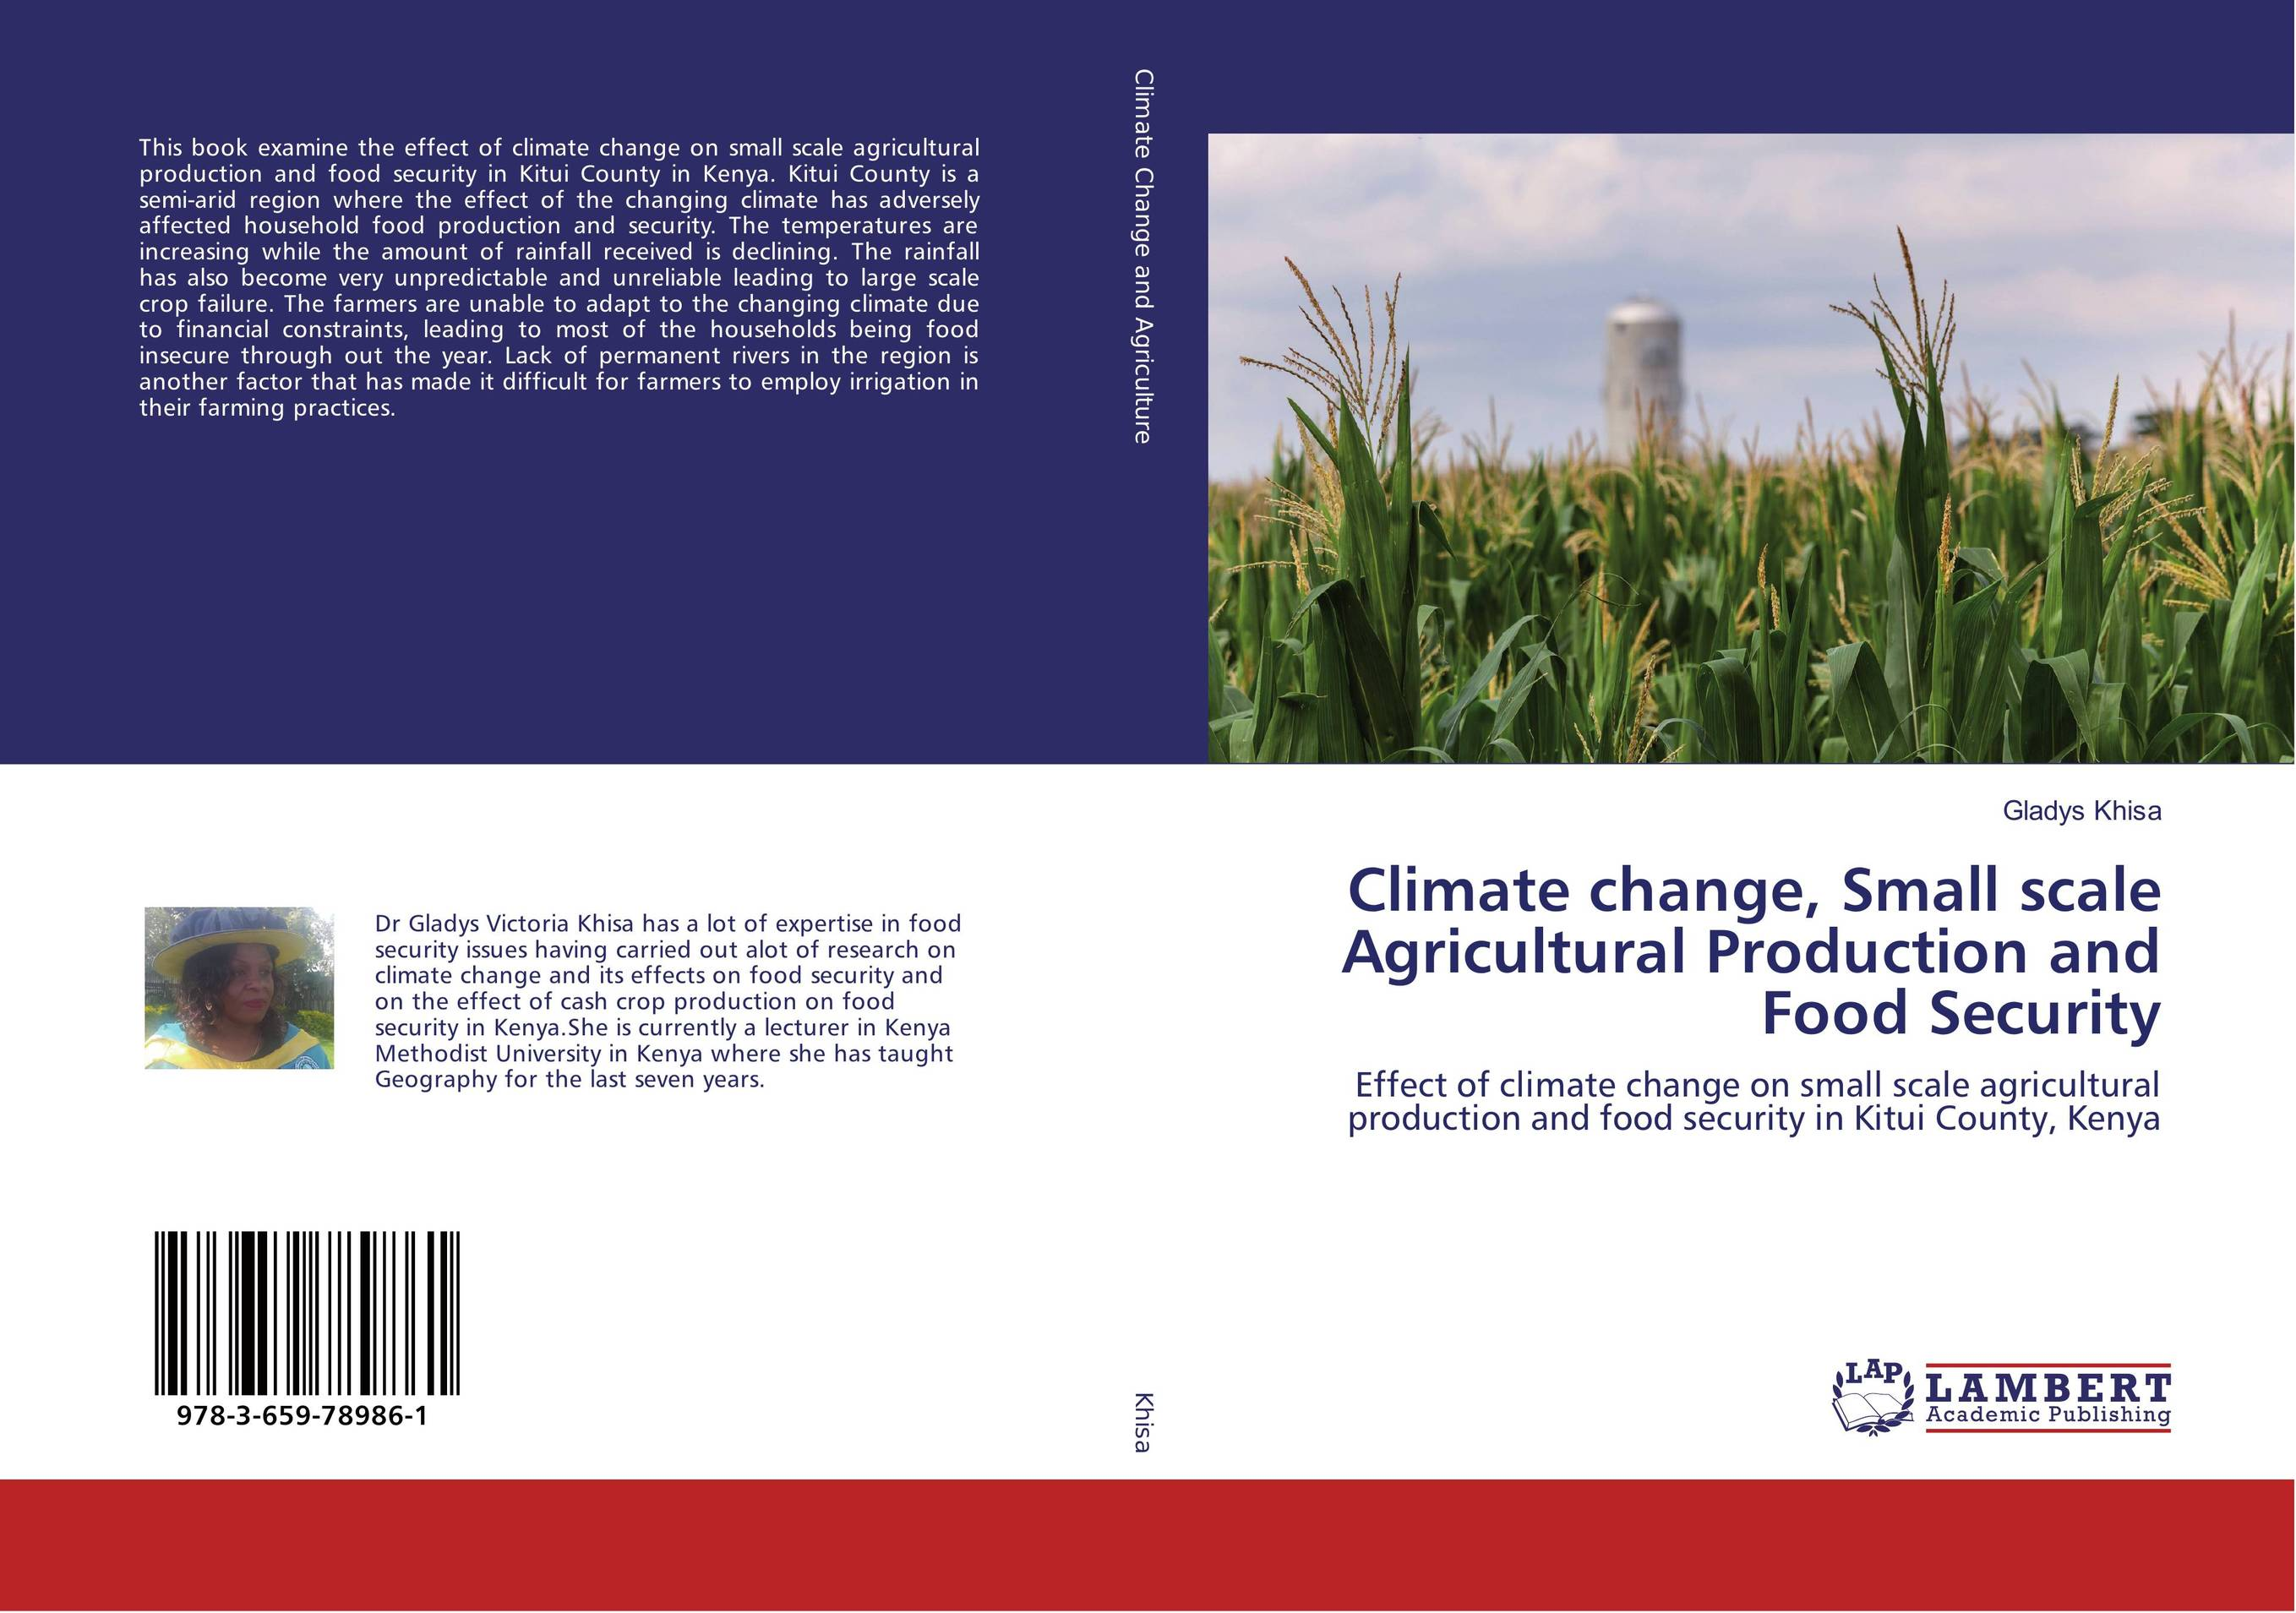 Climate change, Small scale Agricultural Production and Food Security cold storage accessibility and agricultural production by smallholders